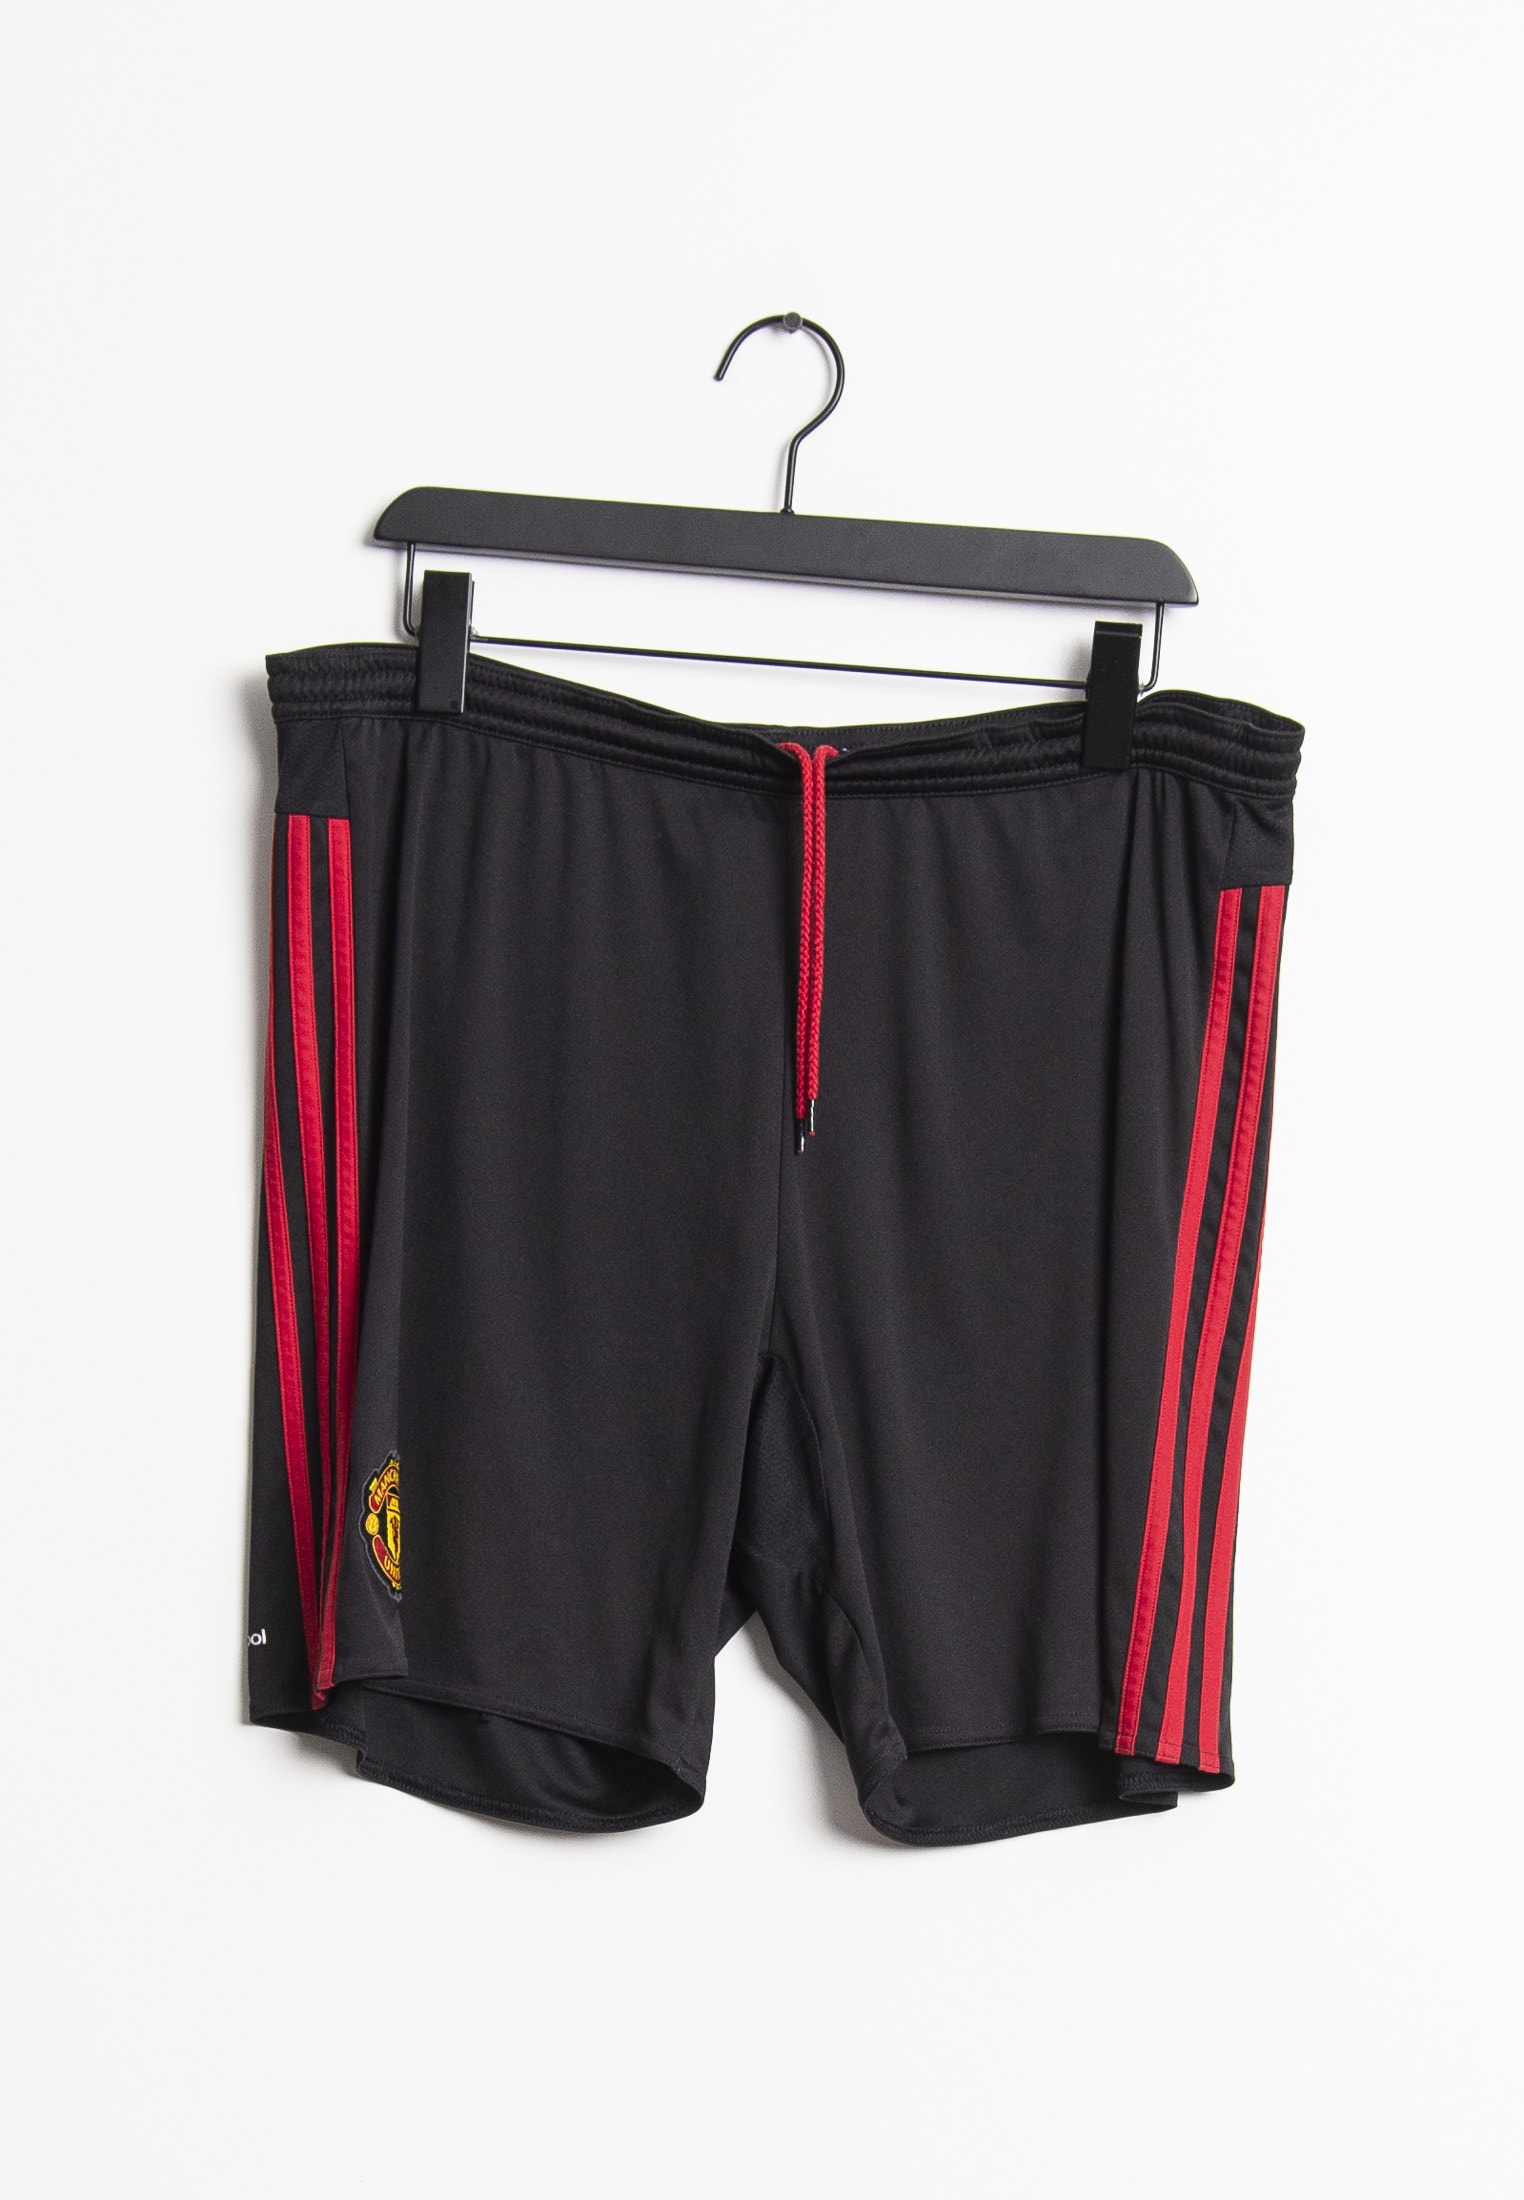 adidas Performance shorts, sort, L